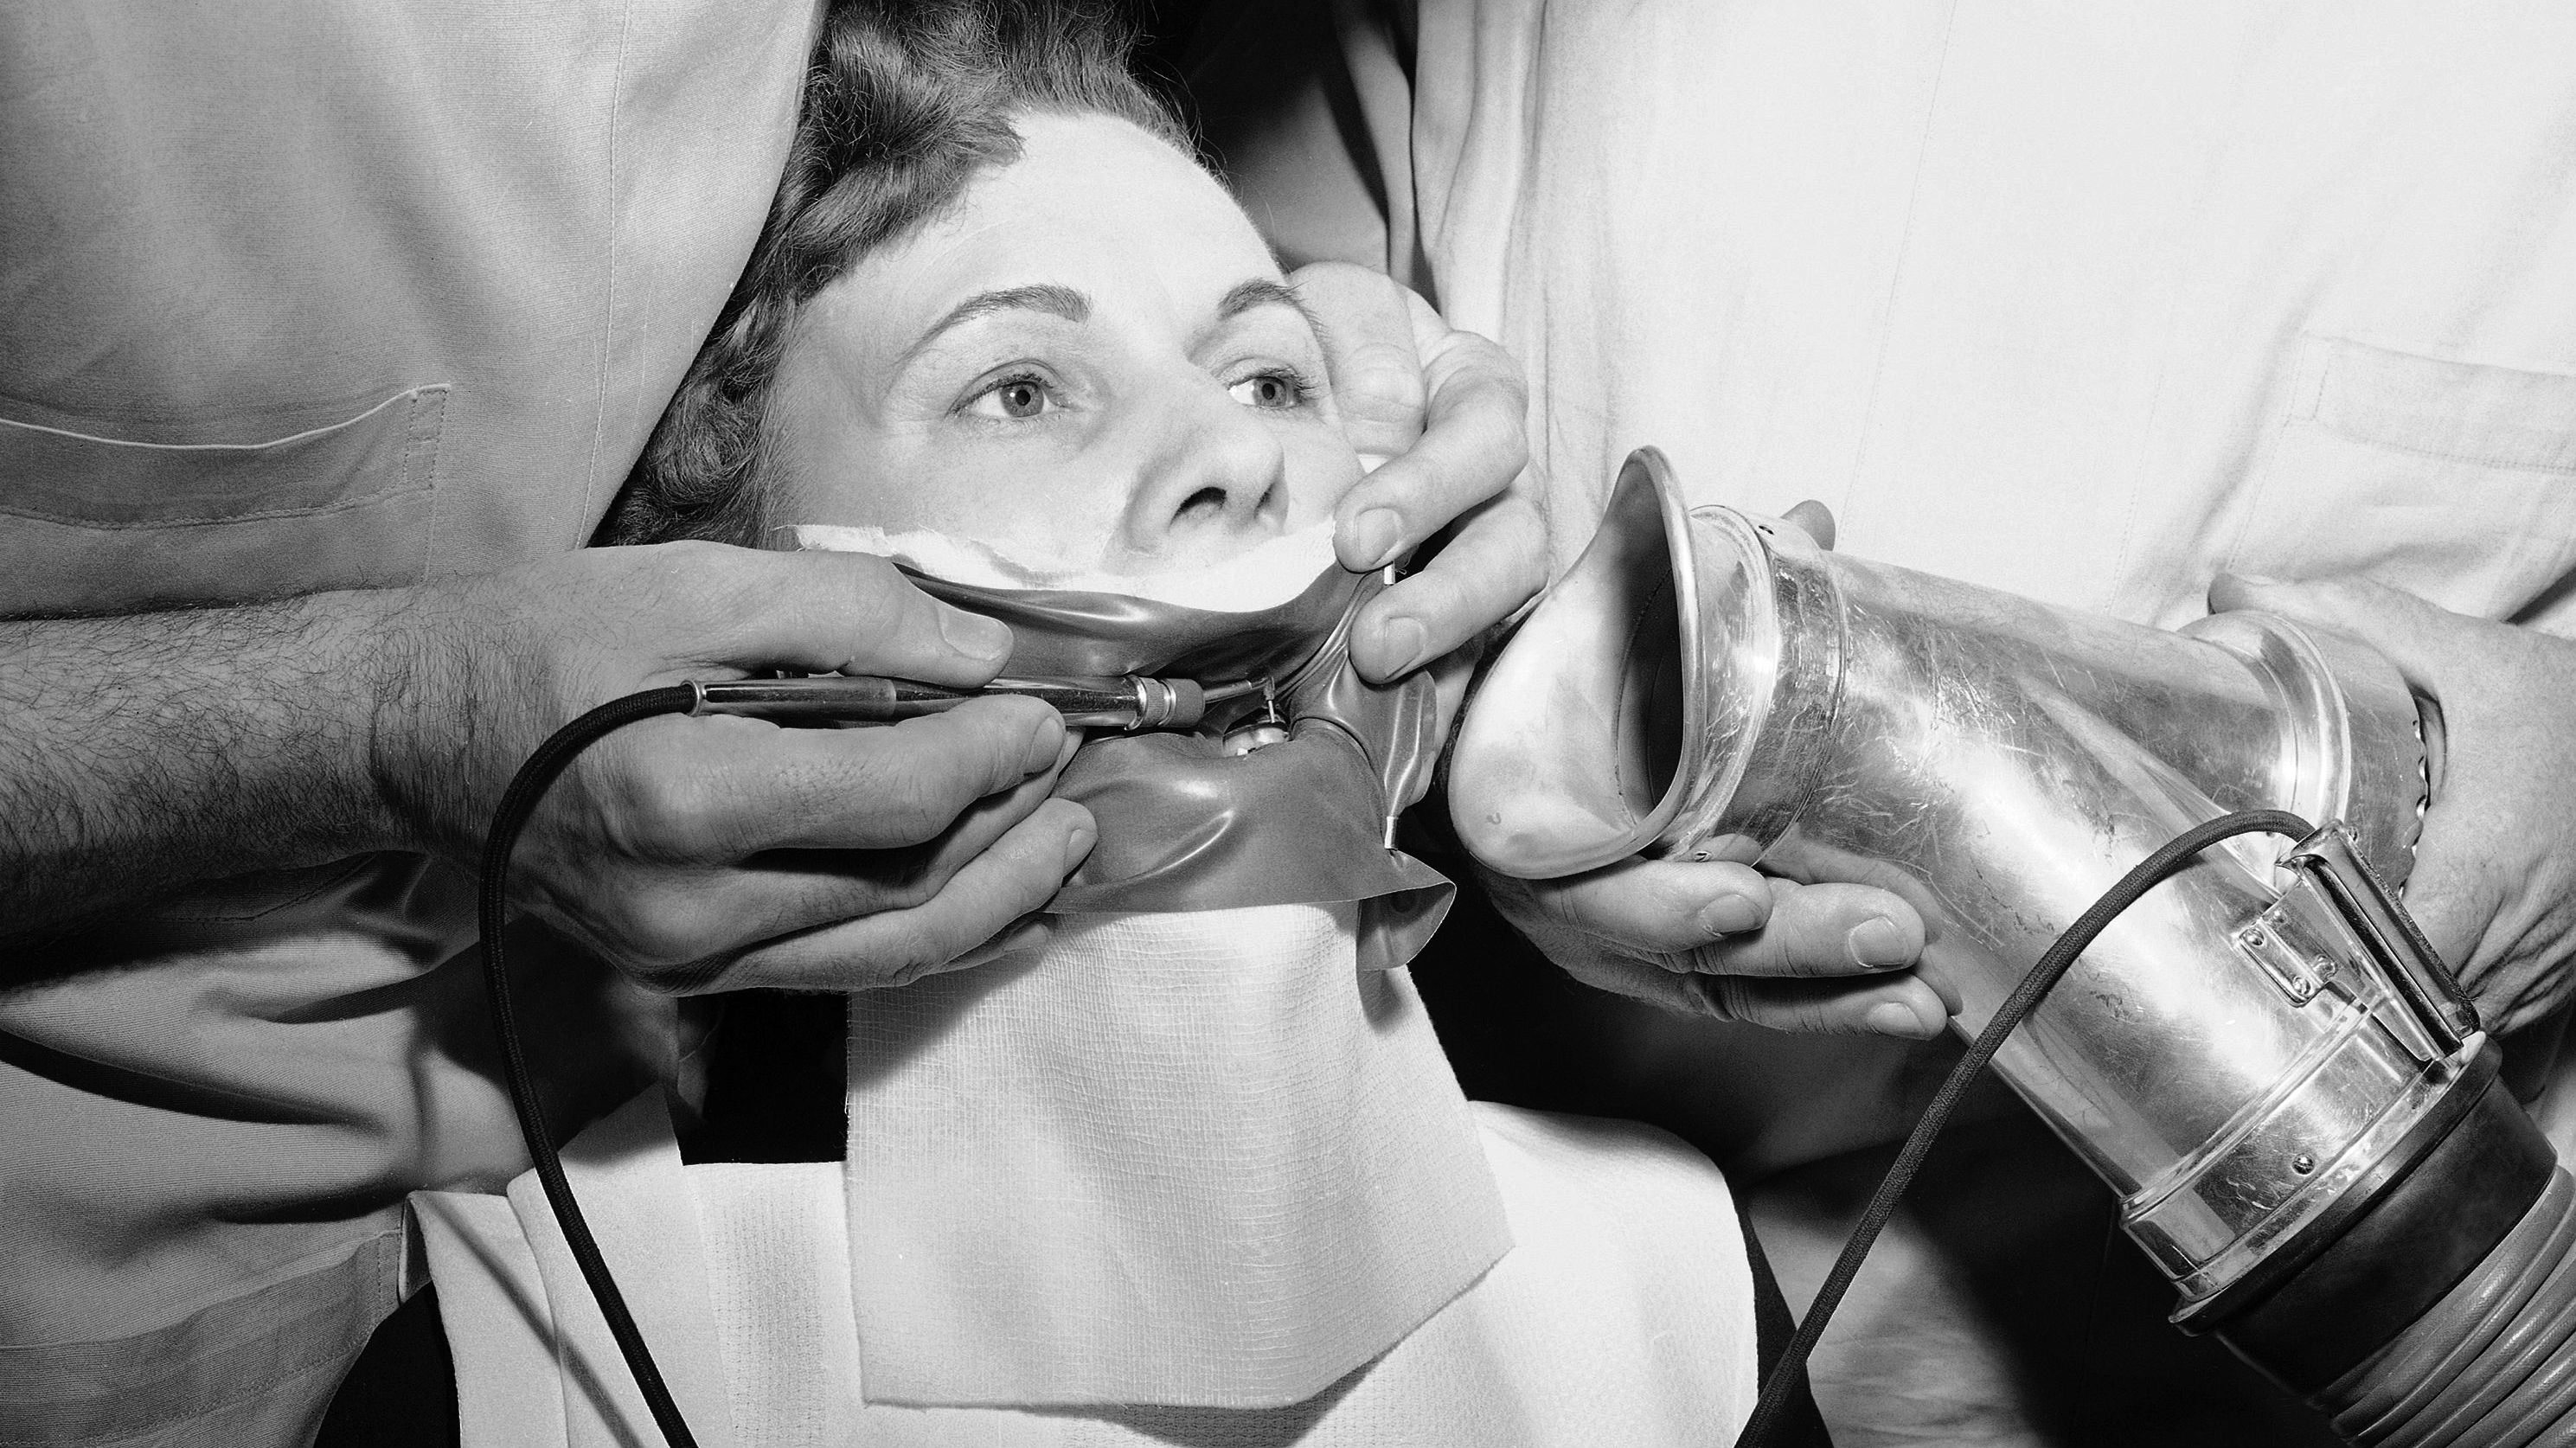 Dr. John V. Lenburg (left) demonstrates how a patient's tooth is prepared for fillings with the new air-cutter dental tool, June 9, 1950. The patient is his wife. Dr. O.W. Silberhorn assists him by holding the exhaust tube for carrying away the abrasive powder by vacuum. Called the Airdent, the dental tool utilizes the principle of air-driven abrasives. Tooth structure is removed by operation of a foot pedal switch which controls the flow of abrasives from the tiny nozzle held over the area to be cut by the dentist. Carbon dioxide gas propels the abrasive powder aluminum oxide for cutting cavities and another for cleaning teeth. The rubber mask over the mouth of the patient is used to keep the tooth to be air-drilled dry.